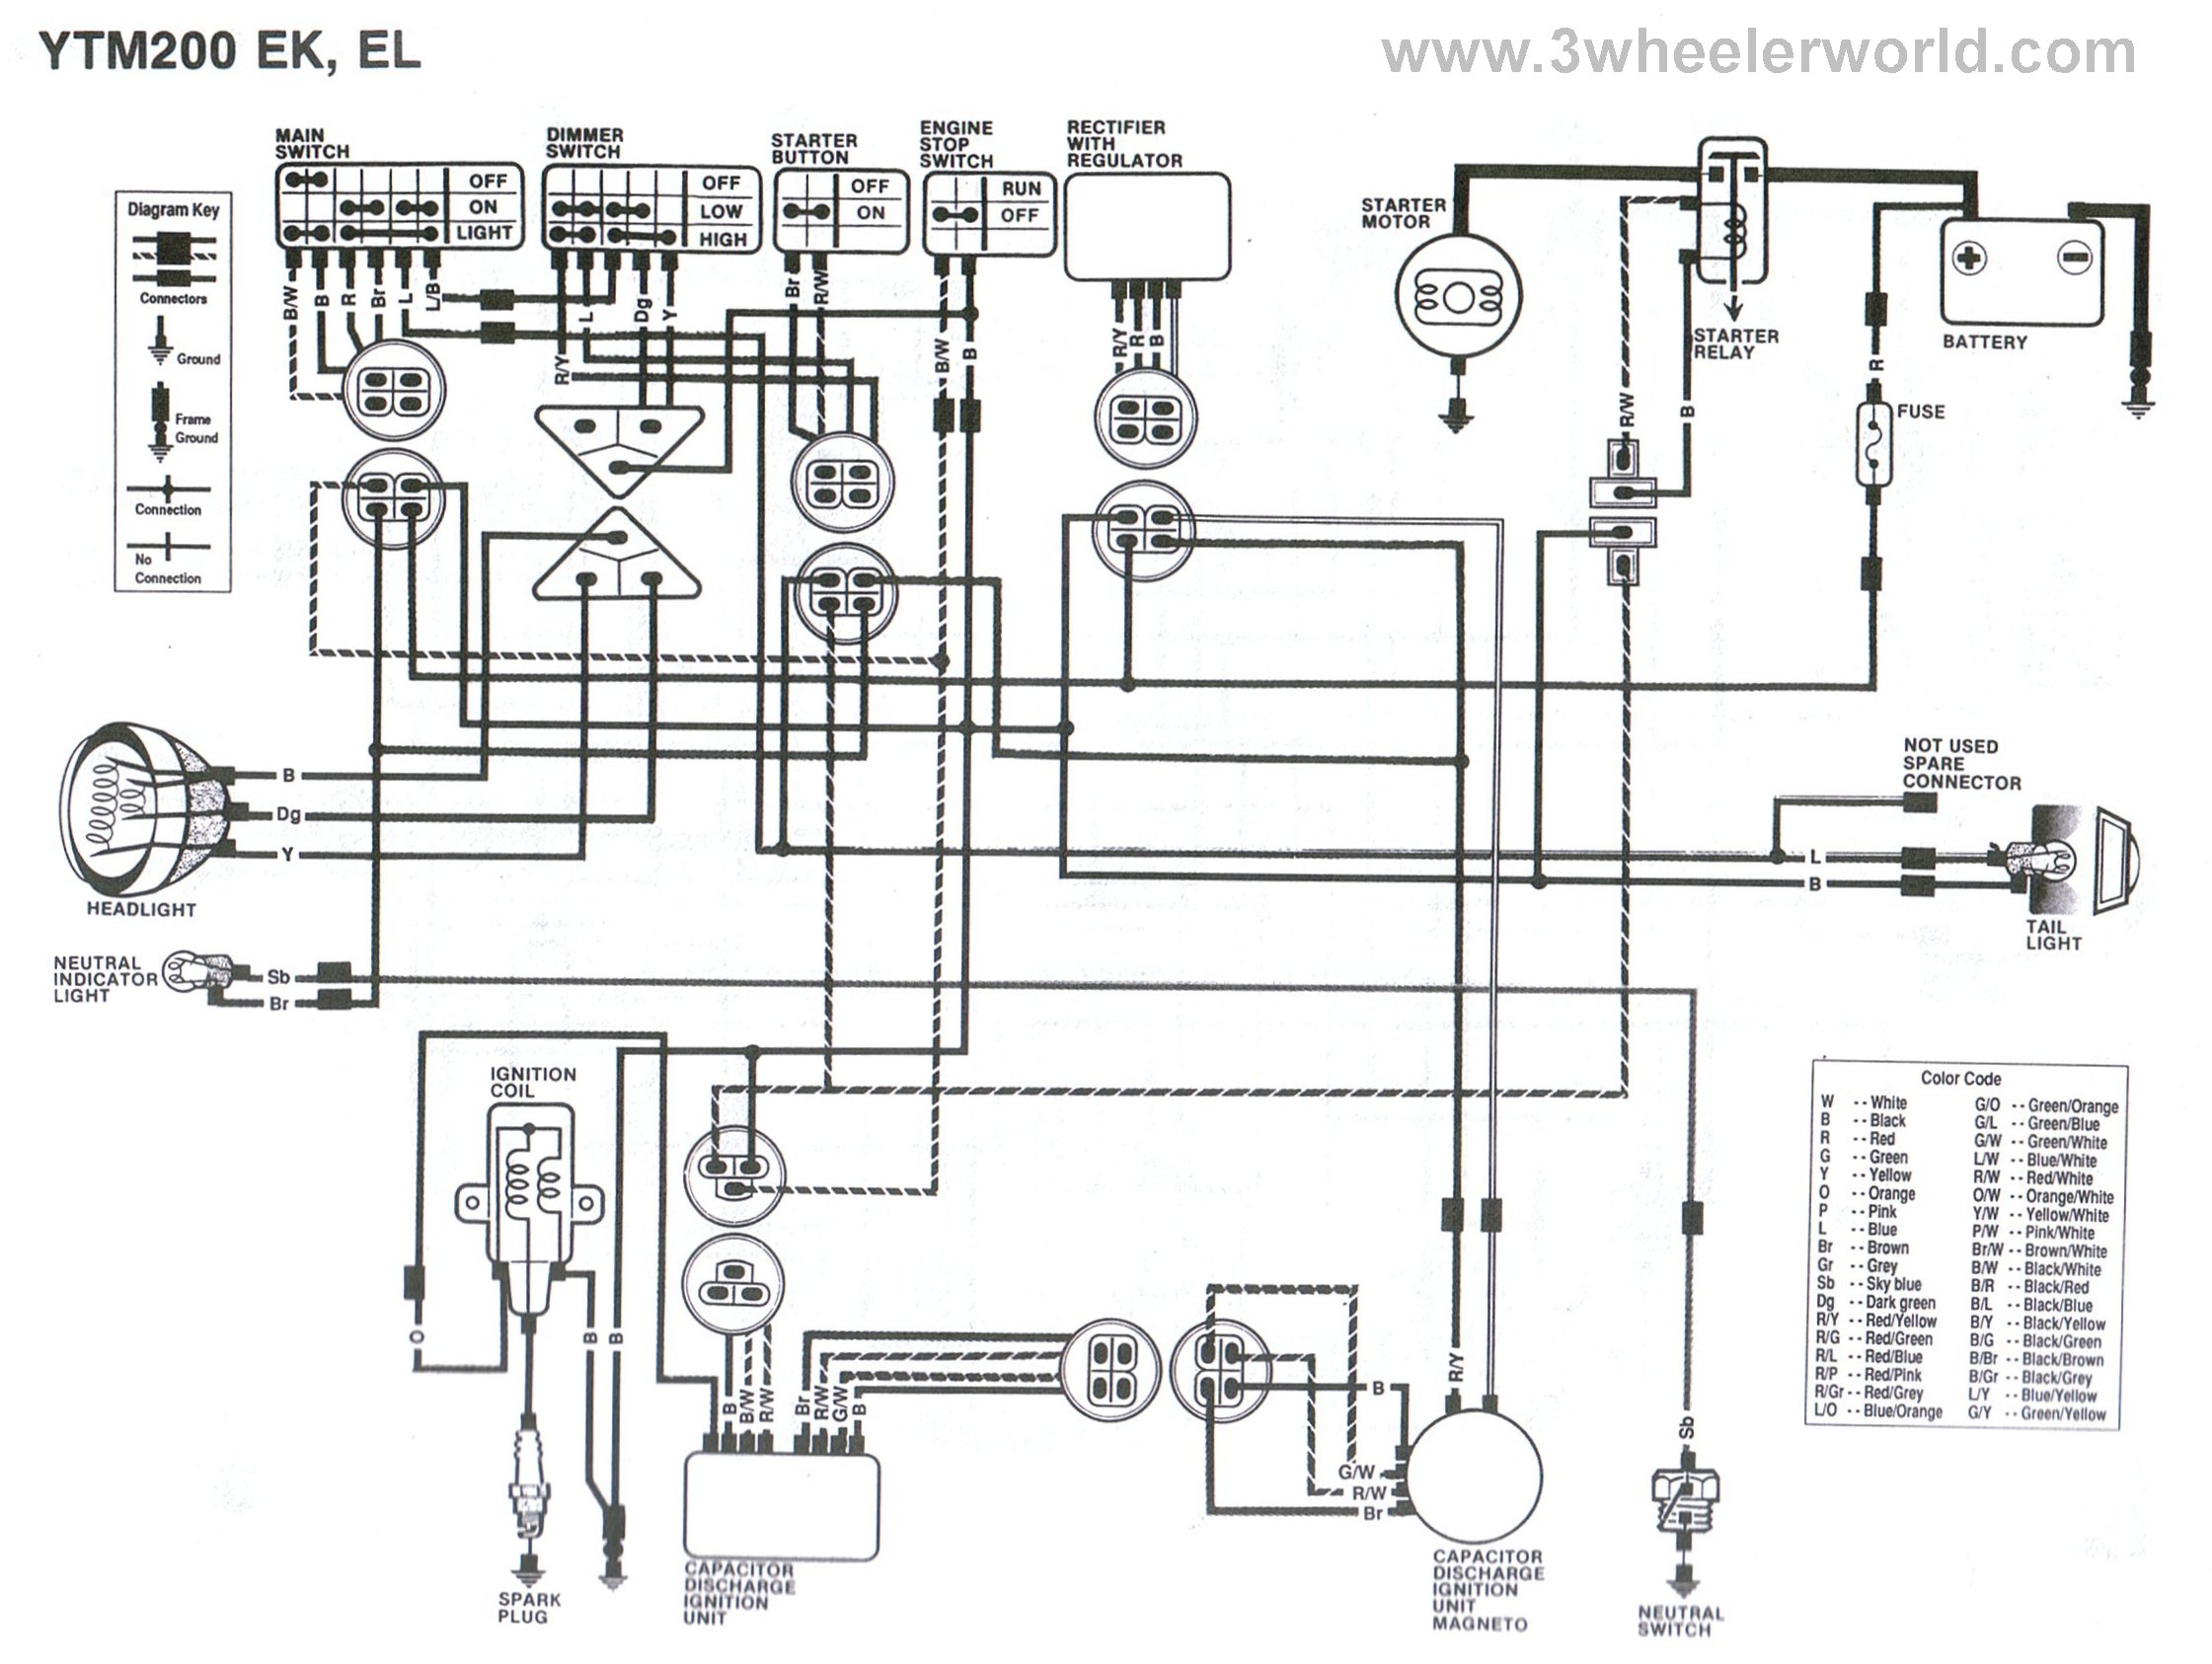 YTM200EKEL 3 wheeler world tech help yamaha wiring diagrams 1983 honda atc 200 wiring diagram at webbmarketing.co